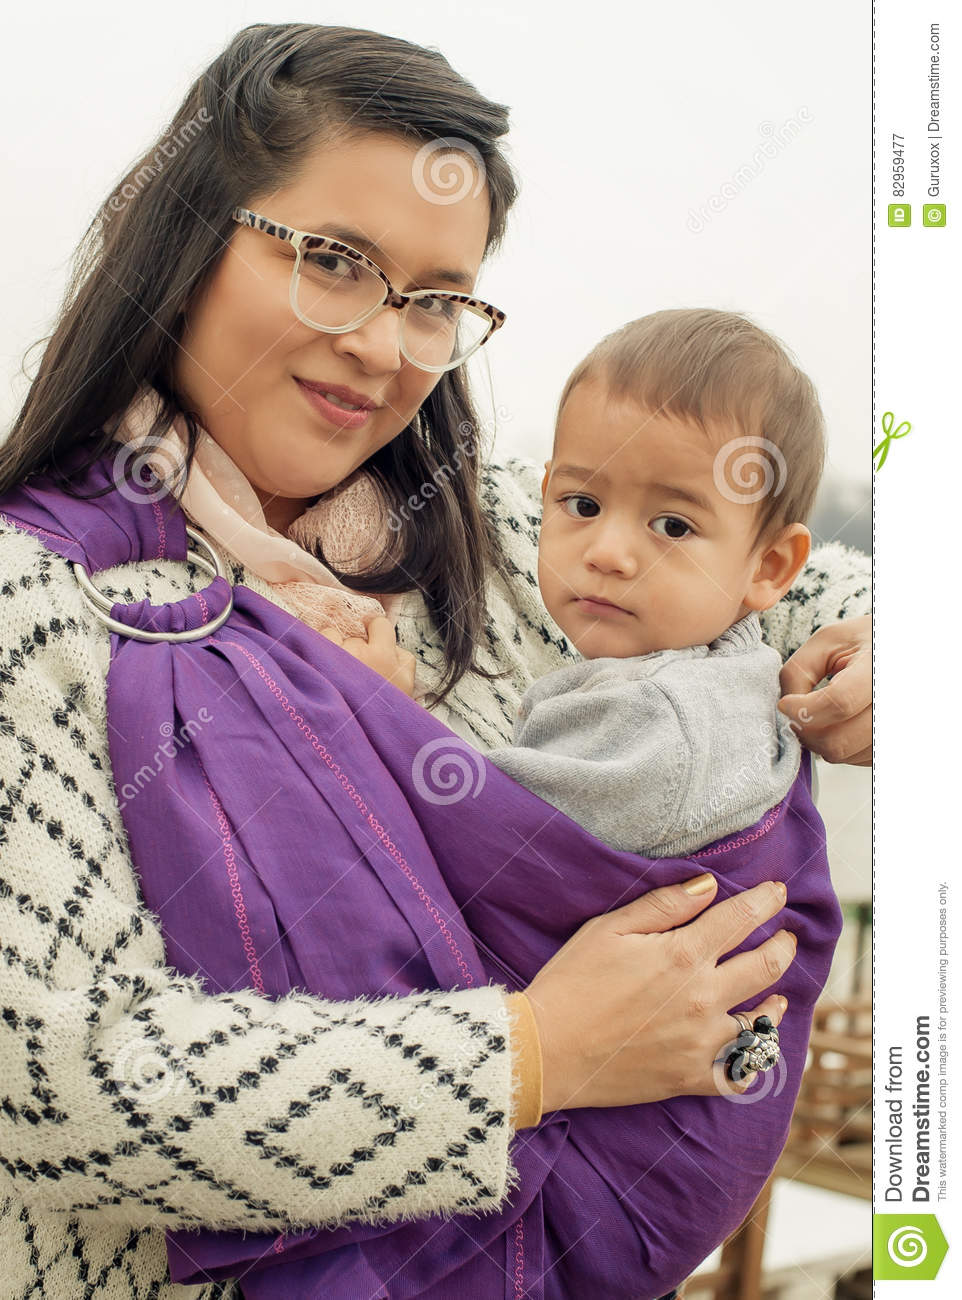 114ce8ecf85 Portrait of a mother carrying her little baby in a baby carrier scarf in  the park